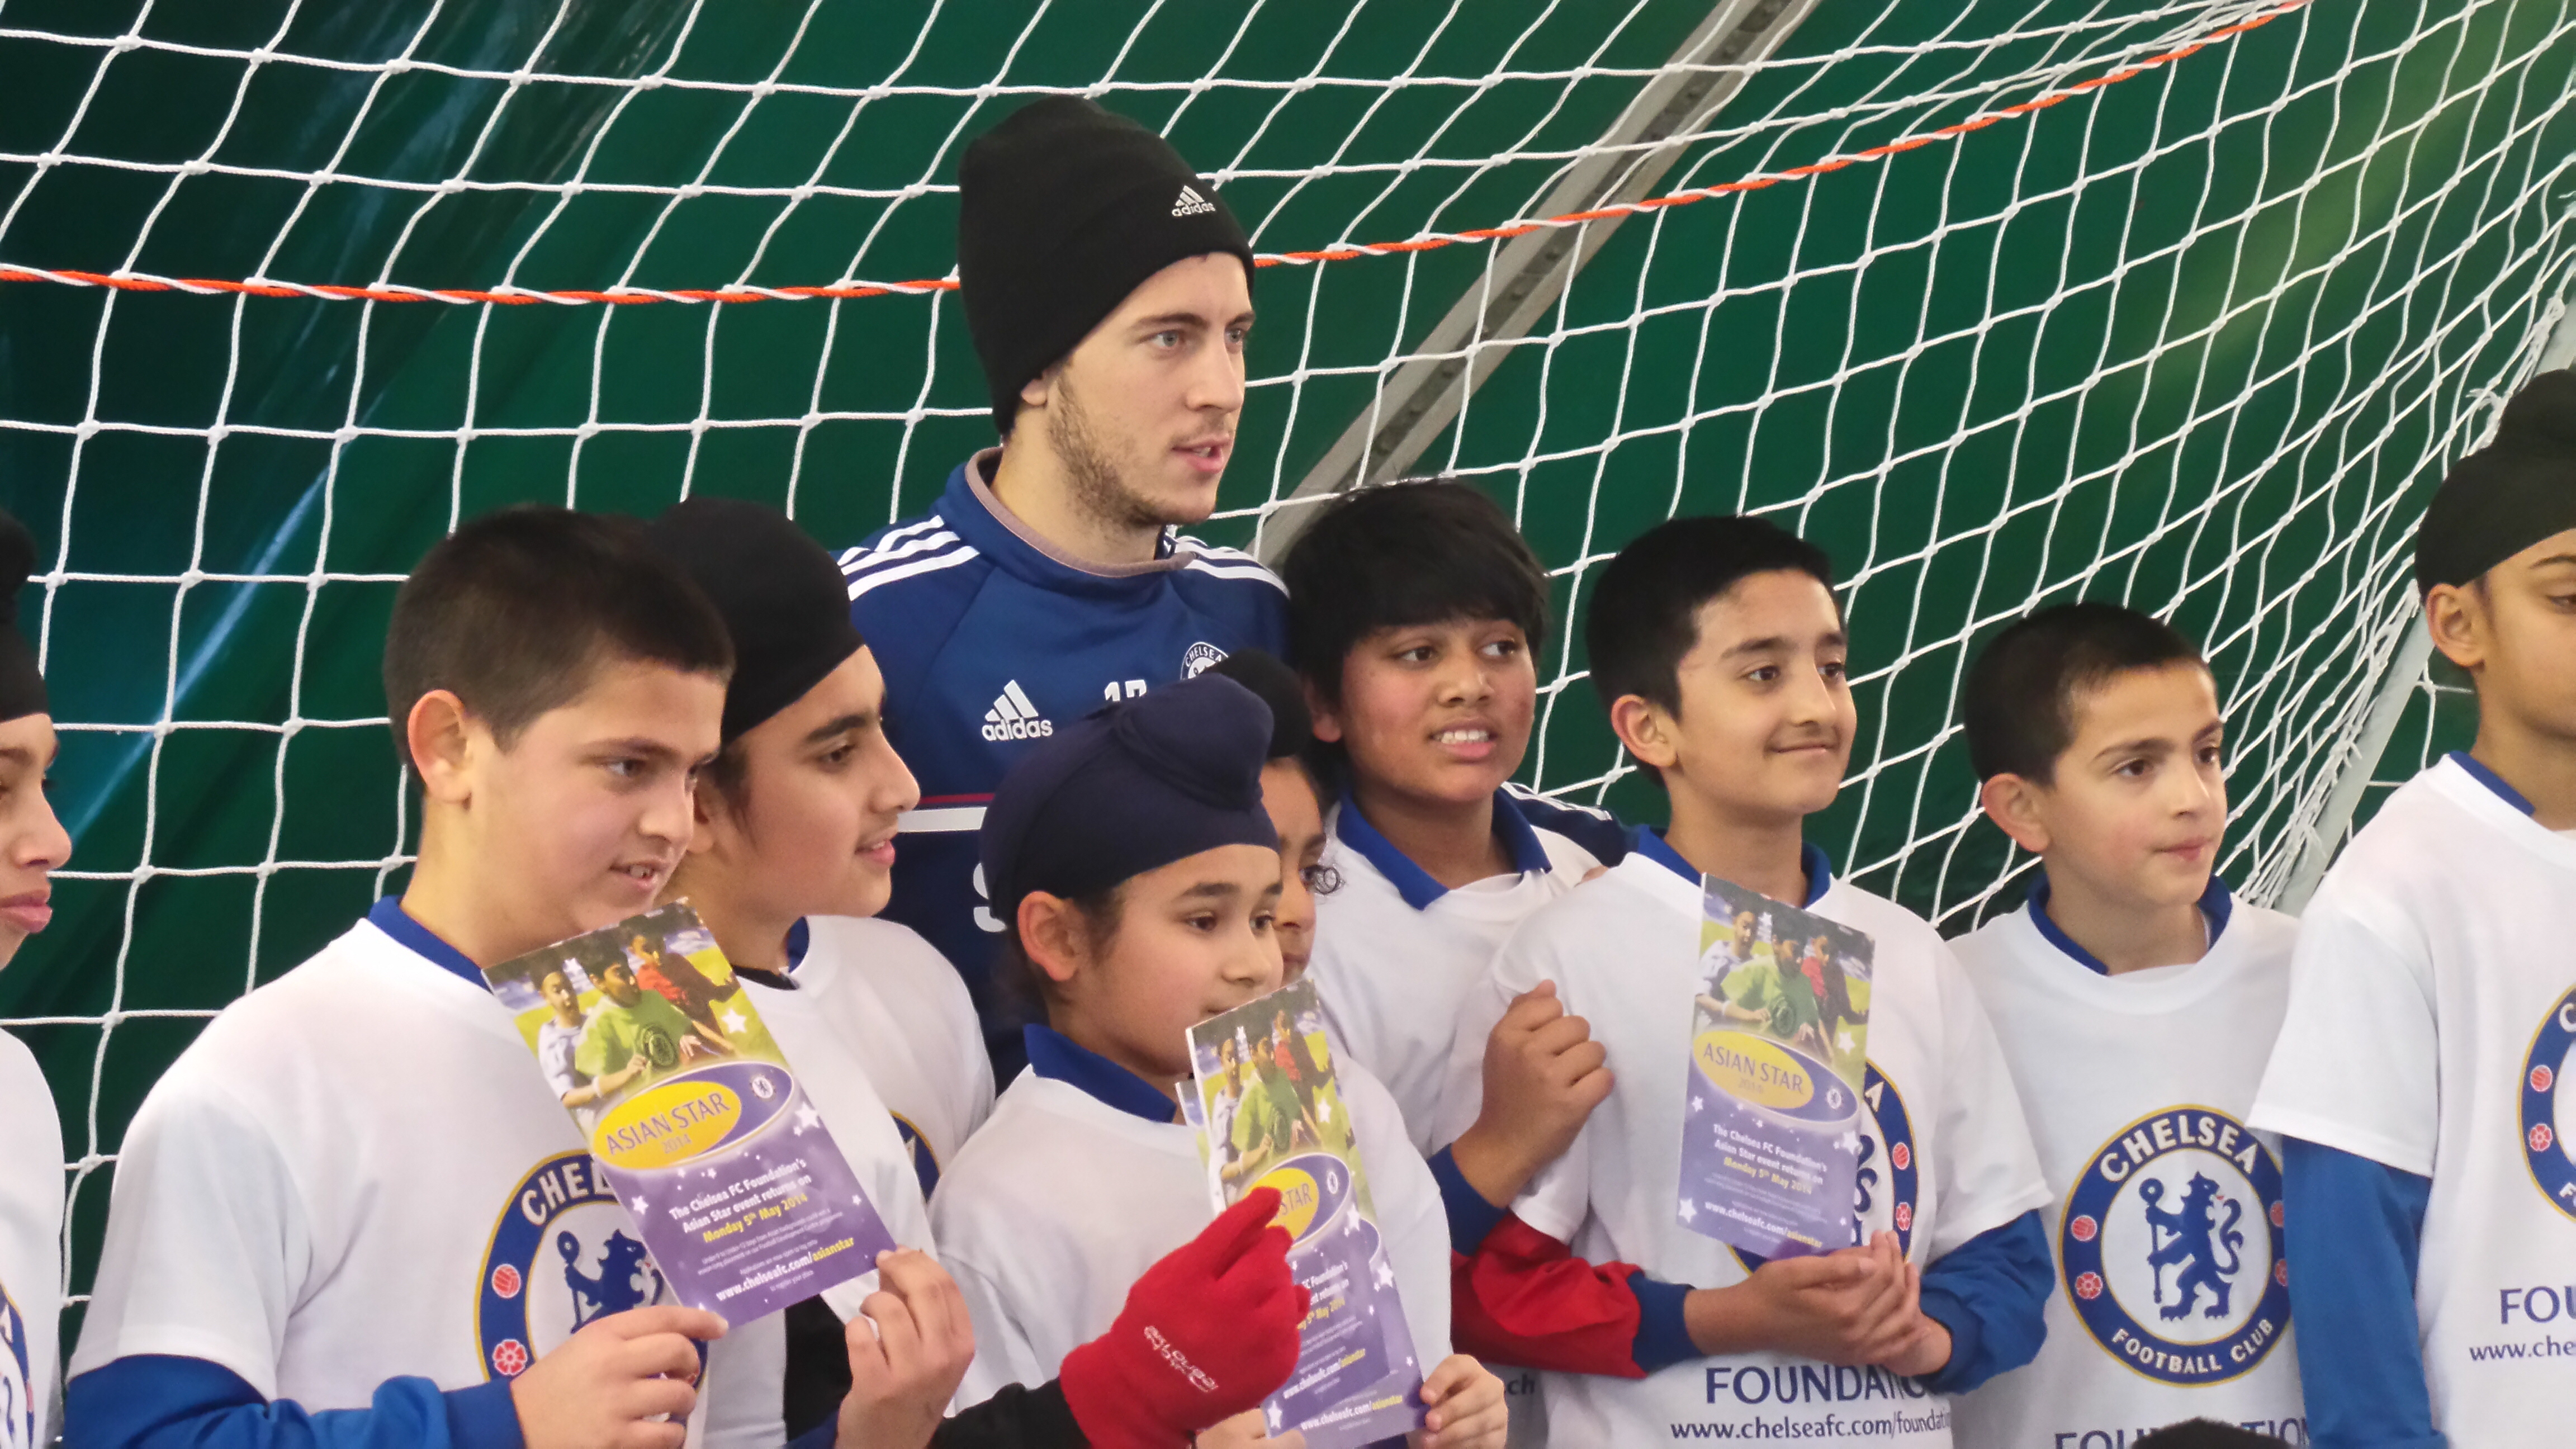 Chelsea kick-off Asian Star campaign in UK